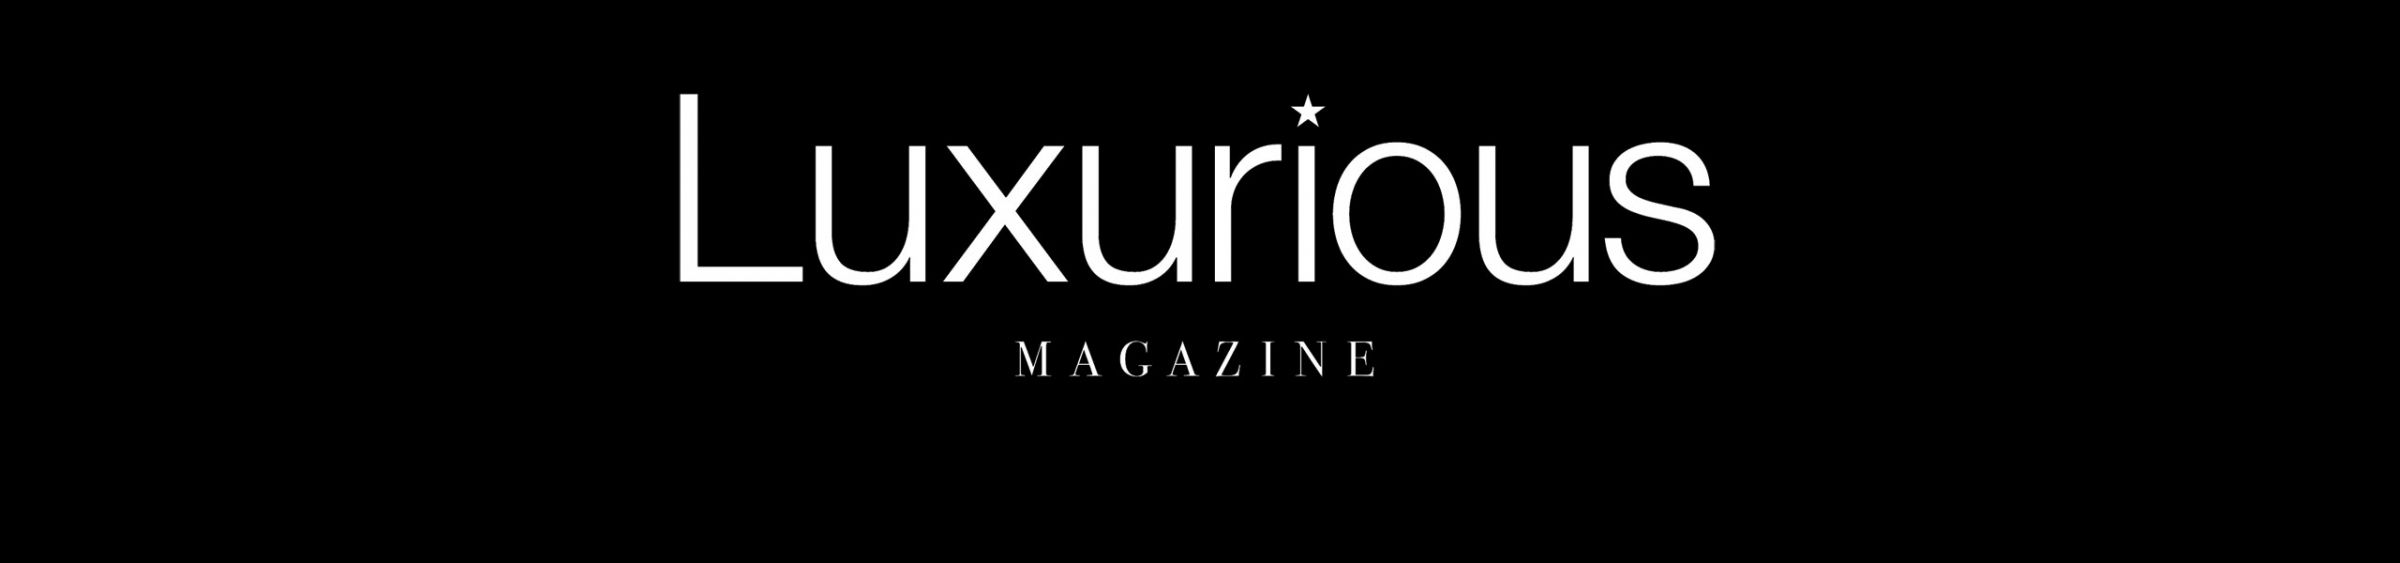 What Are The Luxury Brands Saying About Luxurious Magazine On Twitter? 2